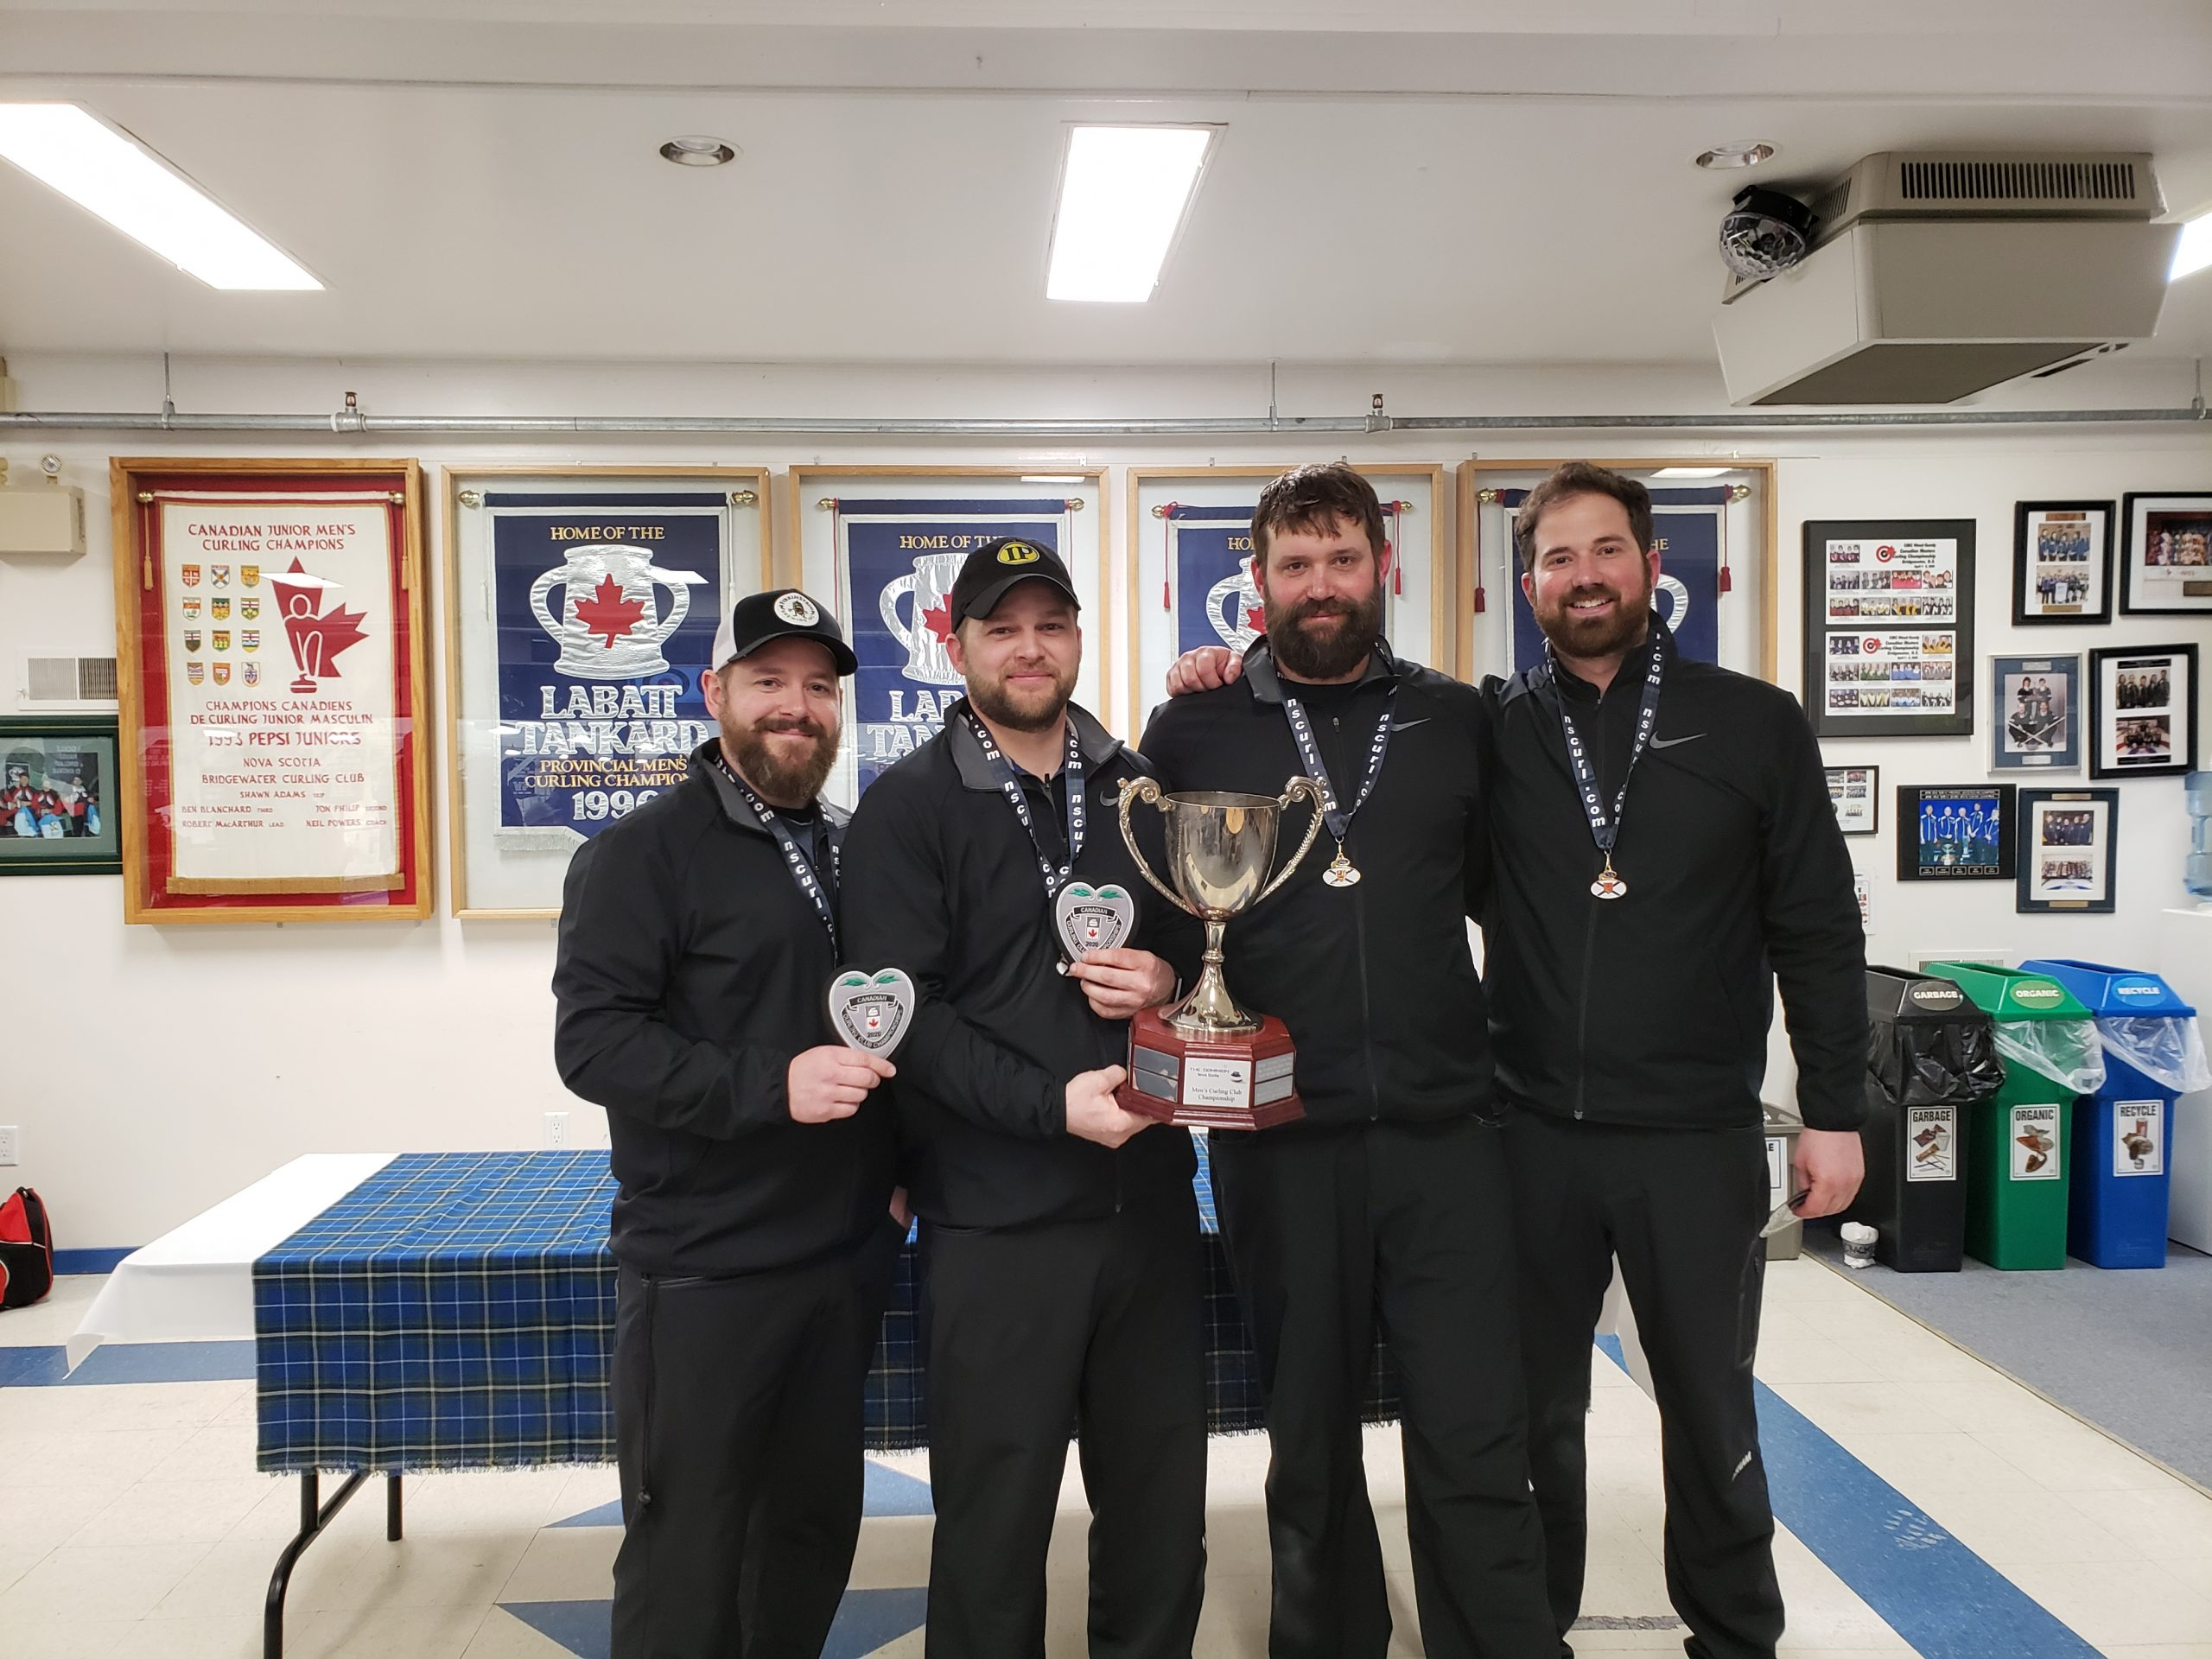 Team Deagle wins Men's Curling Club Championship